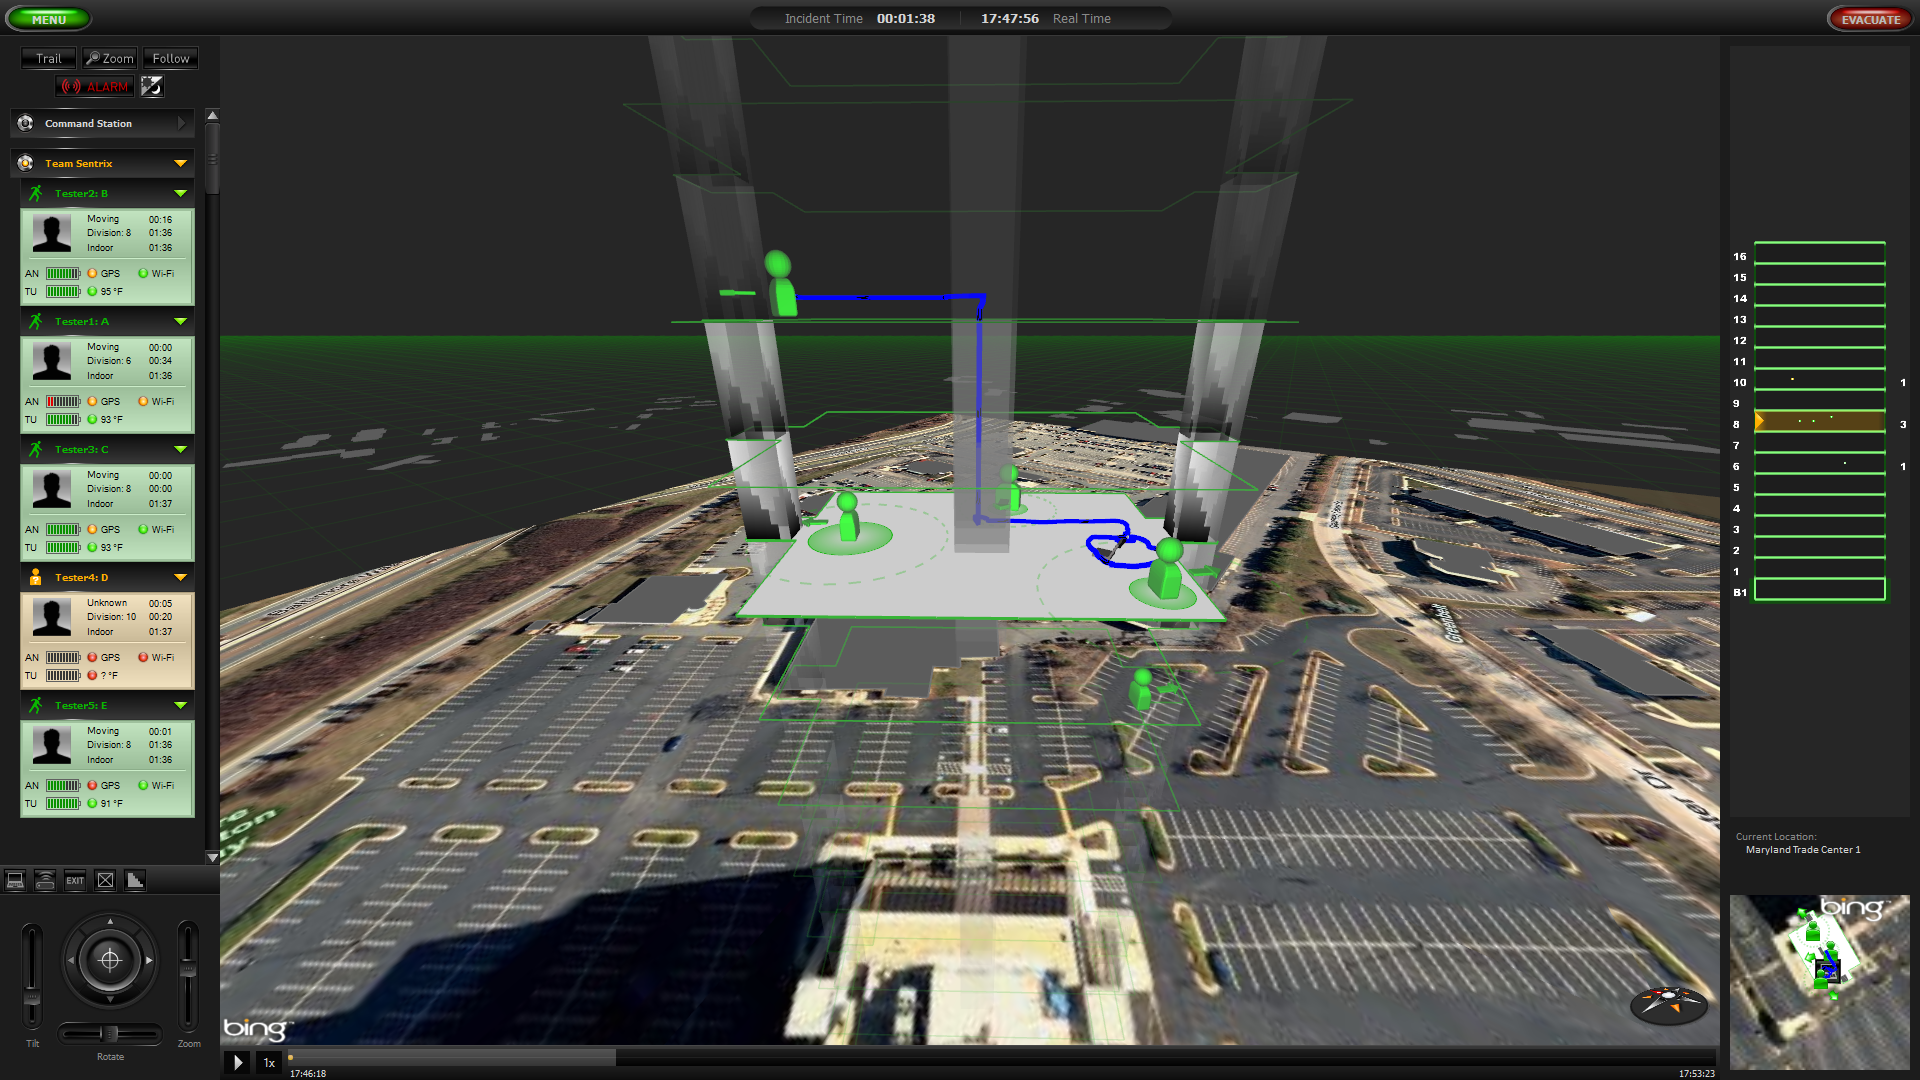 Trx Systems Announces Darpa Award To Support Accurate